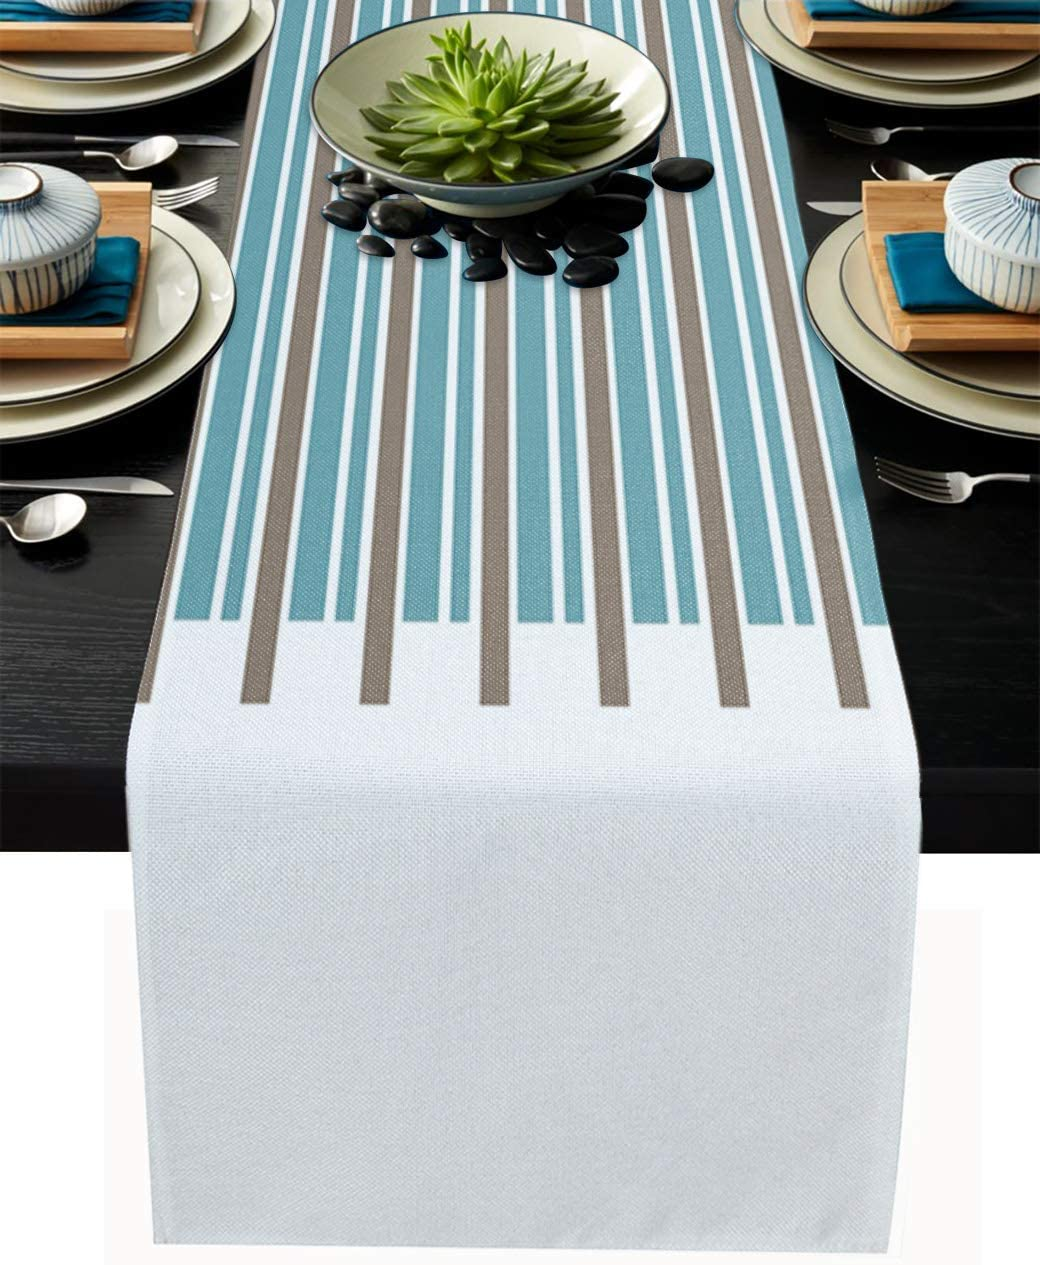 Home Collection dh Fashion Blue and Brown Horizontal Stripes Non-Slip Table Runner for Tabletop, Fashion Table Runners Perfect for Dinner Parties, Holidays, Everyday Decoration, 14x72in